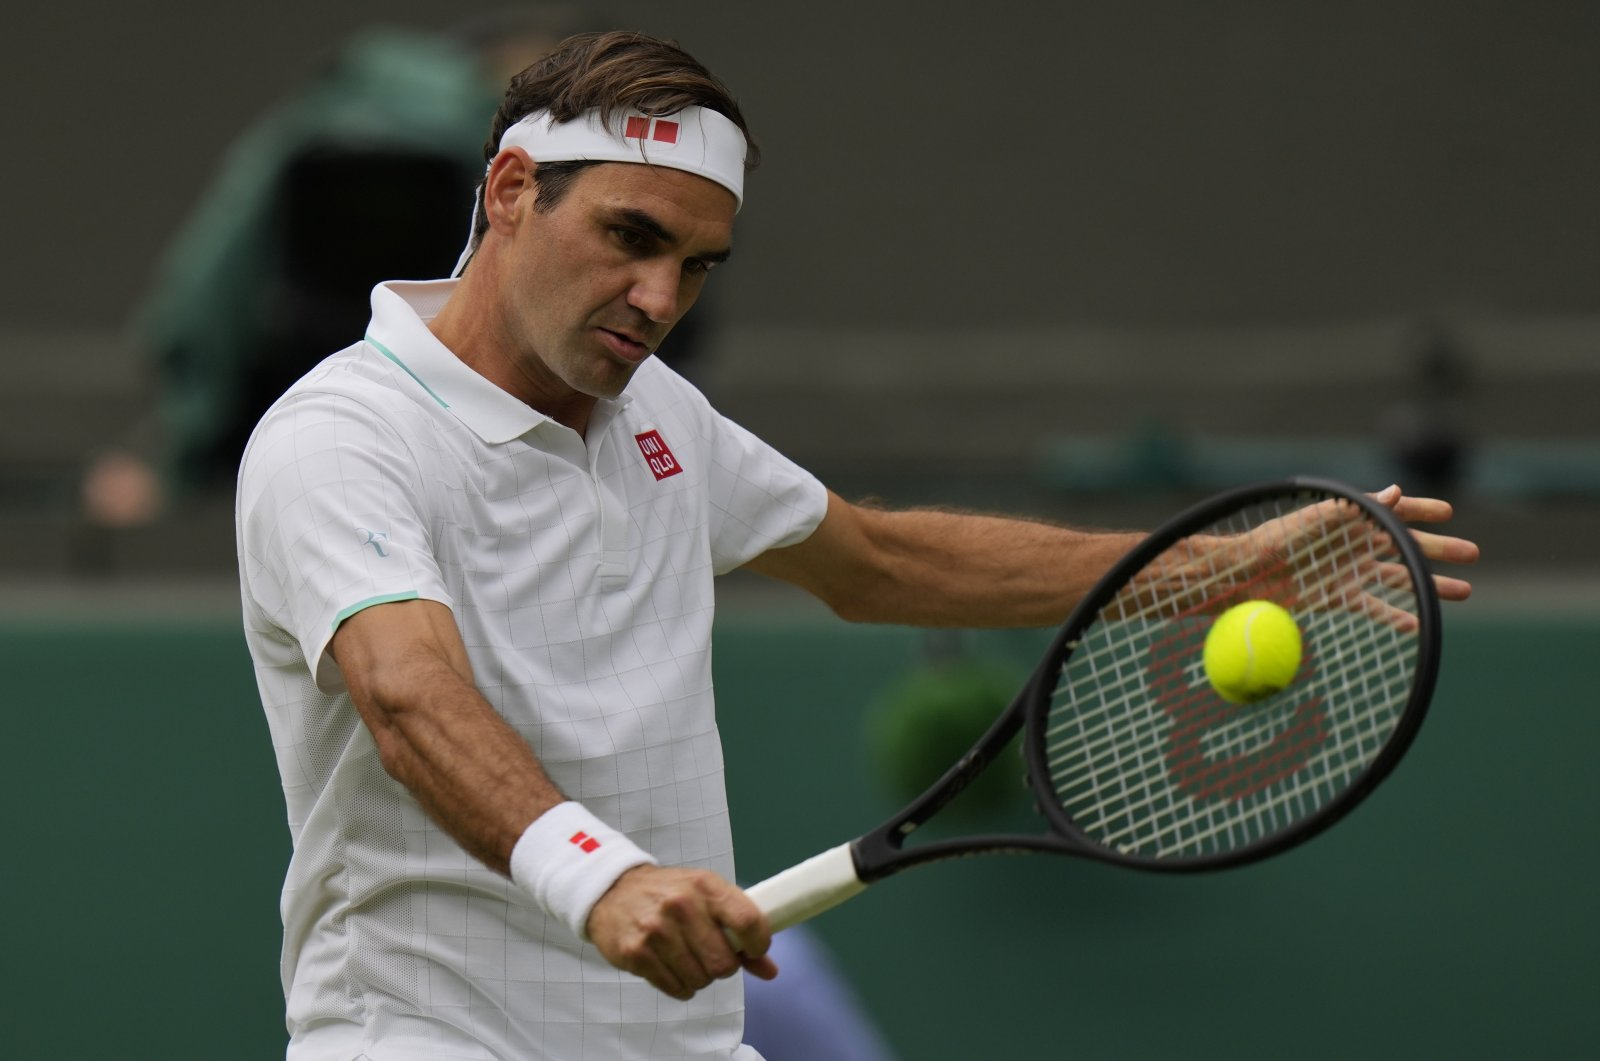 Switzerland's Roger Federer plays a return during the Wimbledon men's singles third-round match against Britain's Cameron Norrie London, England, July 3, 2021. (AP Photo)